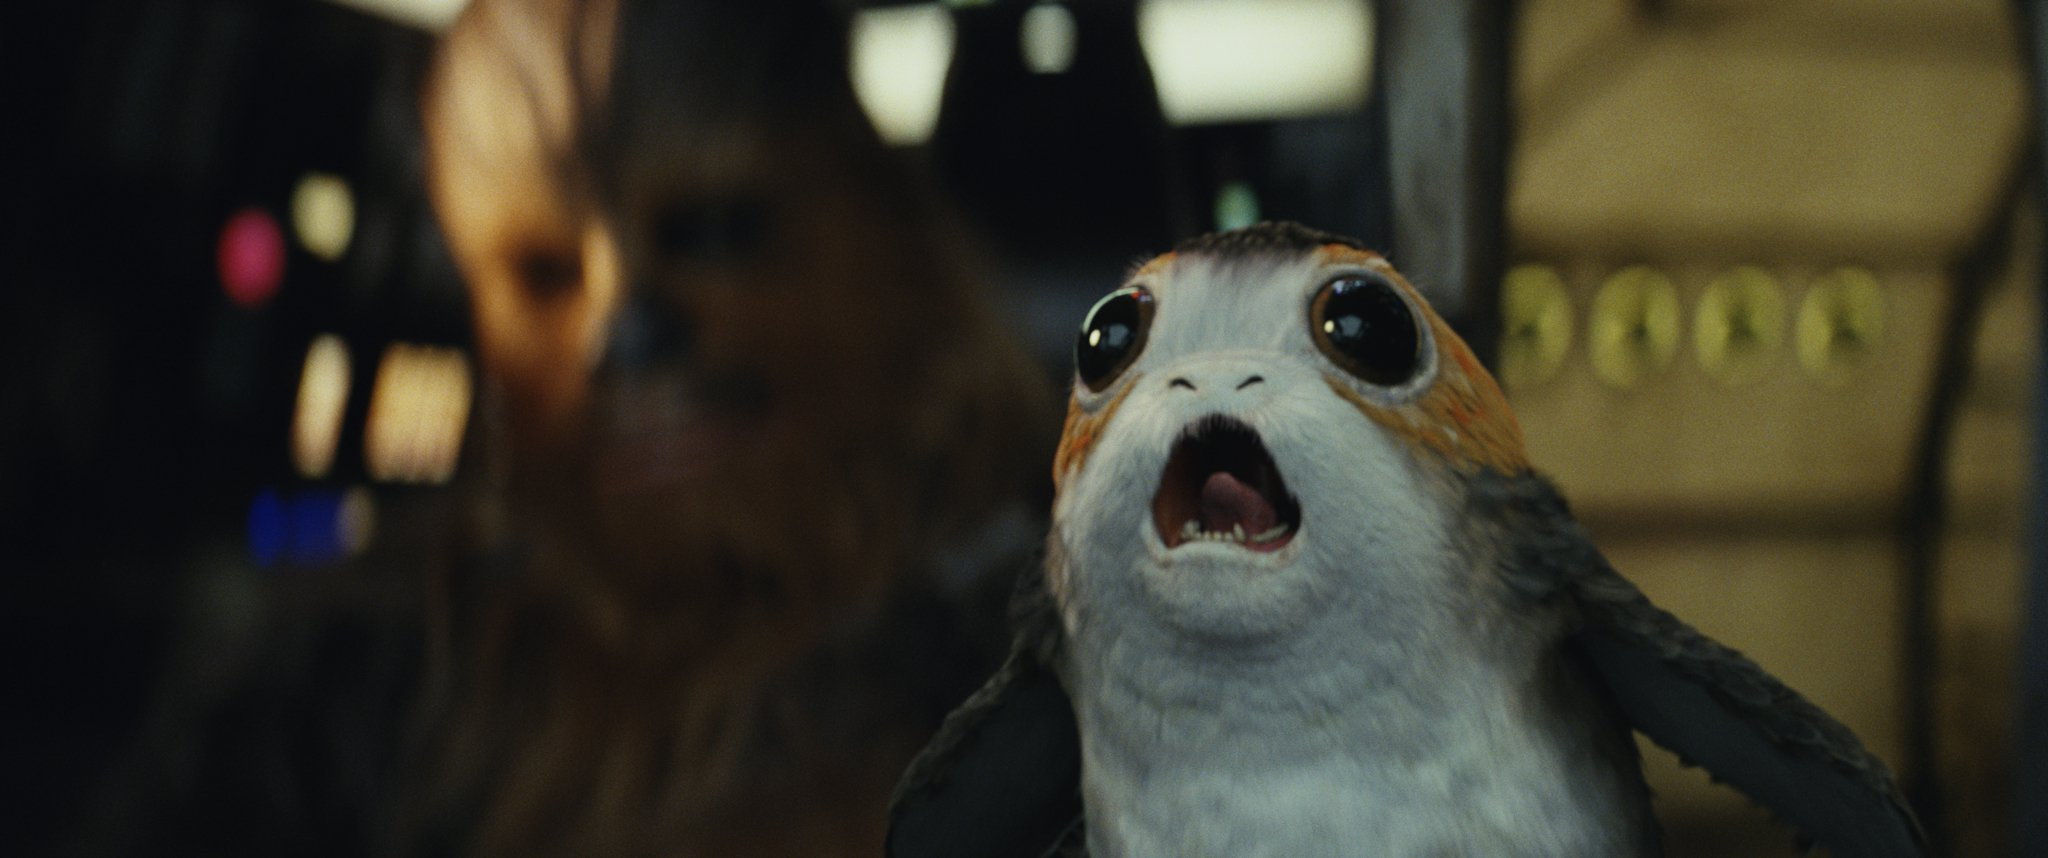 cutest character porgs